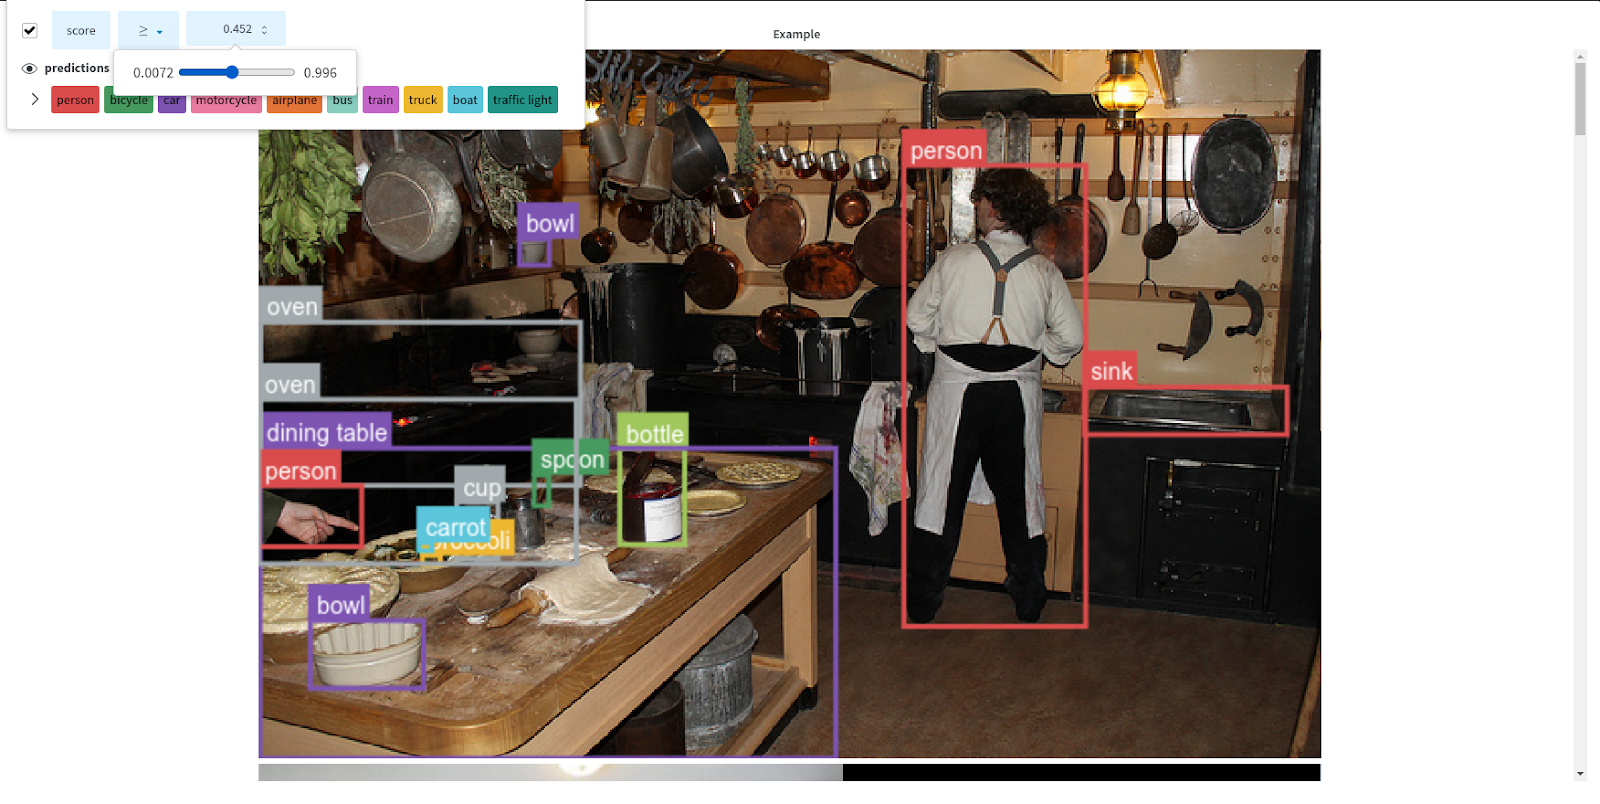 Weights & Biases Object Detection